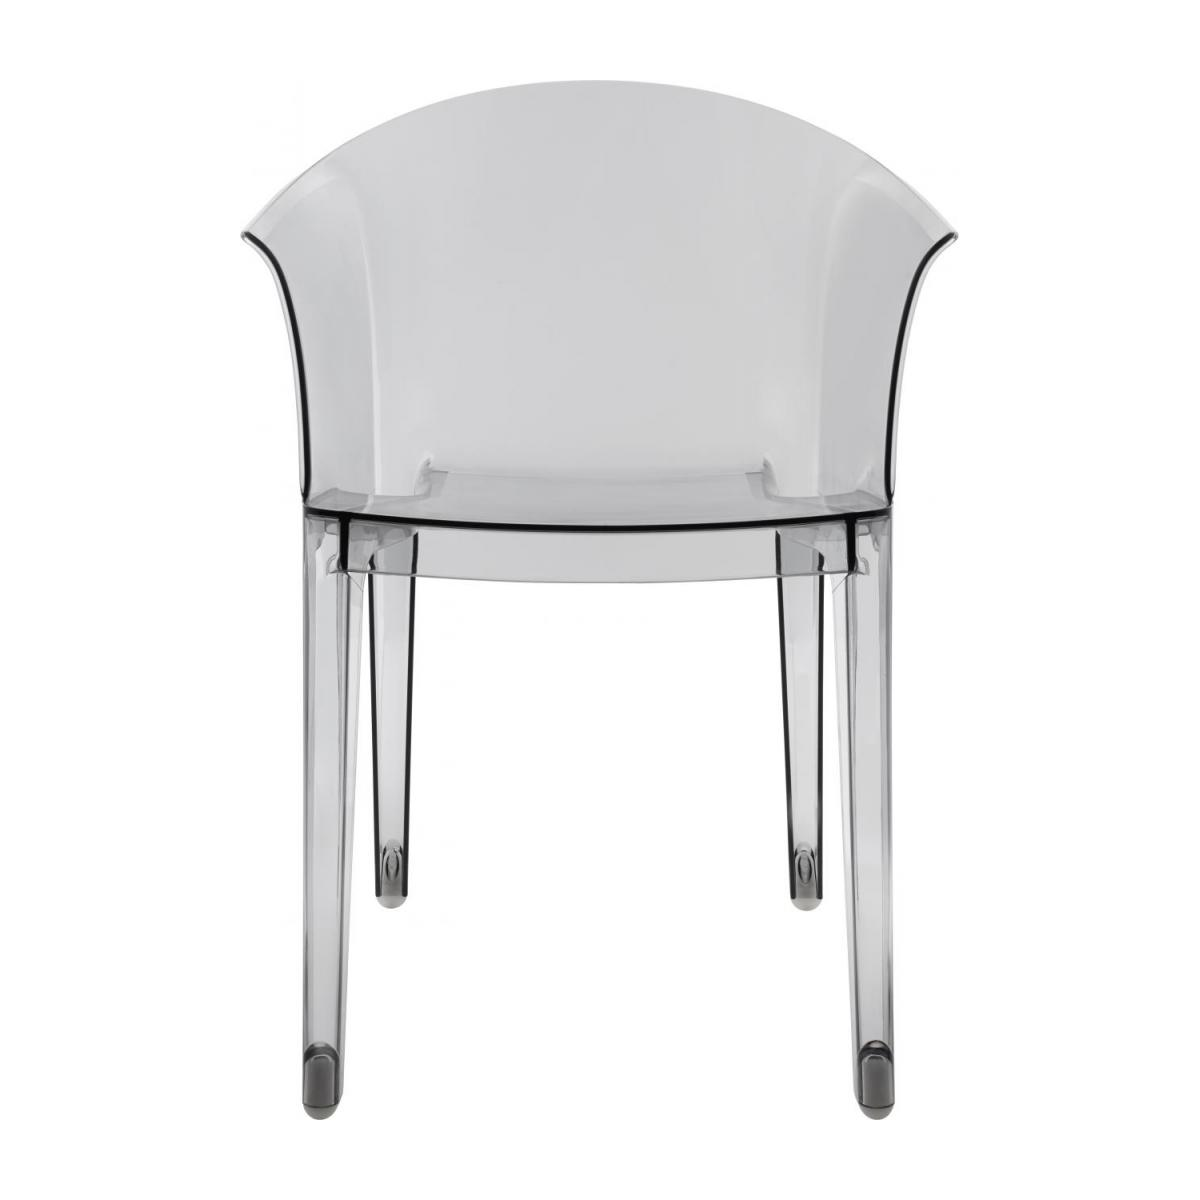 Smokey grey armchair in polycarbonate n°2